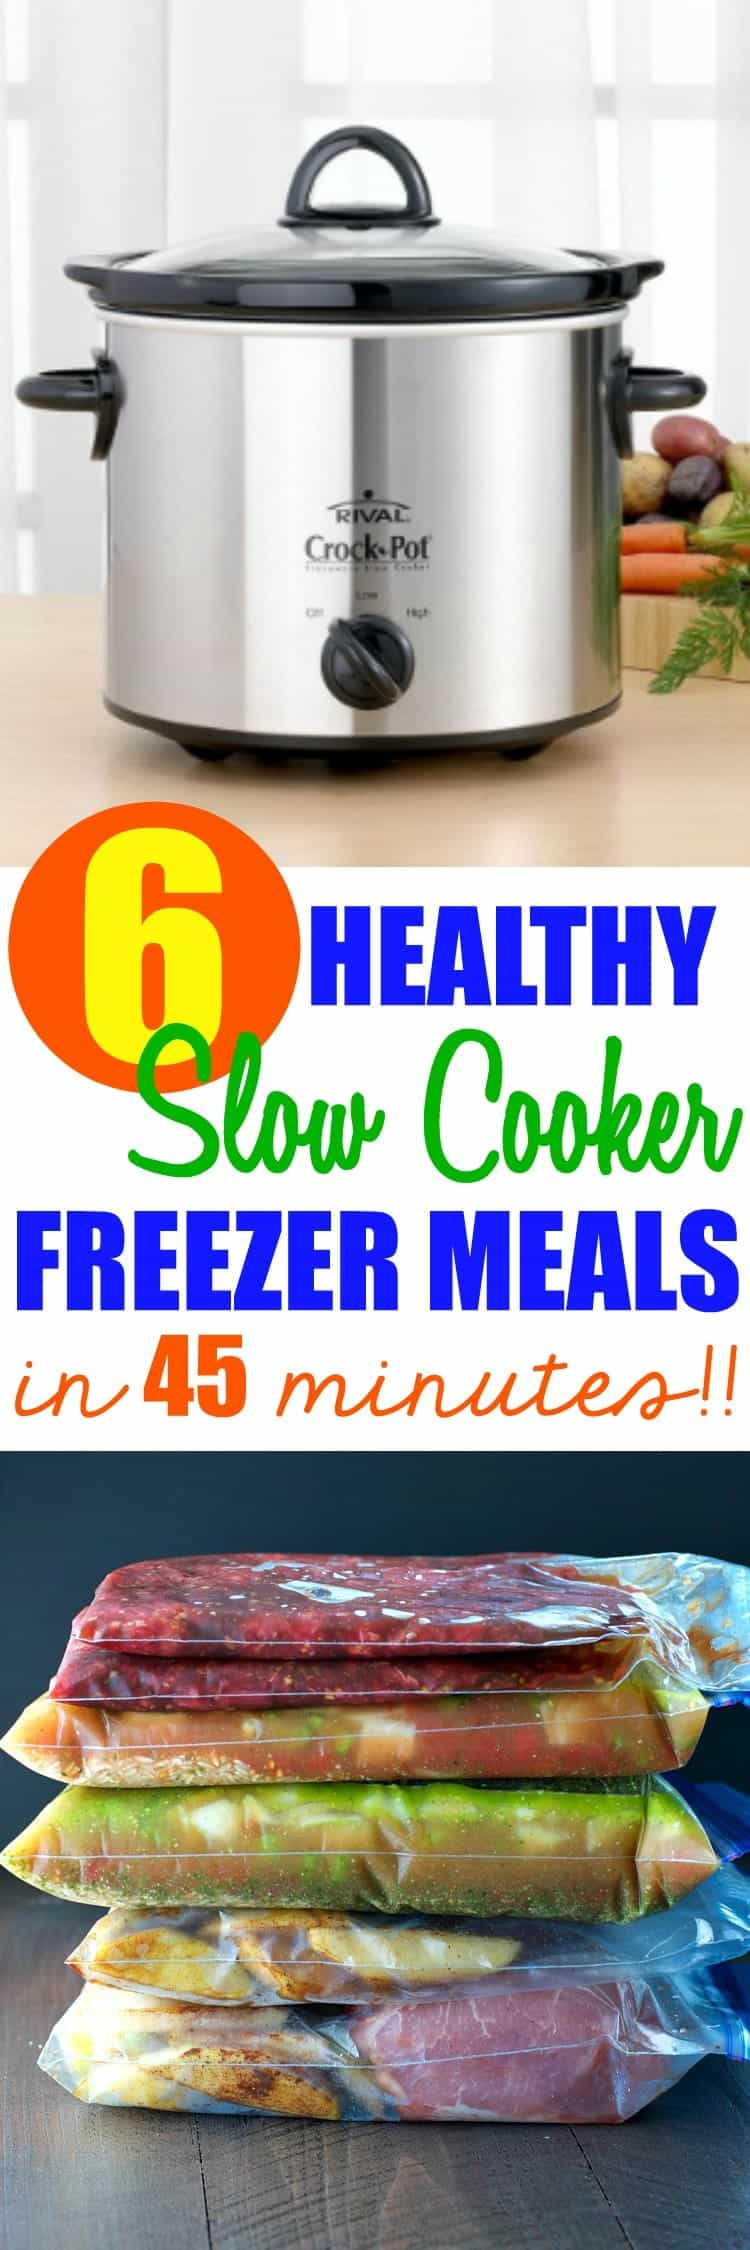 My slow cooker is my BFF. I use it several times a week, every week. Whoever came up with the idea of make-ahead slow cooker freezer meals is a genius! It's a total time saver. In just a few hours (including shopping time) you can put together enough meals for a few weeks. That's a healthy.